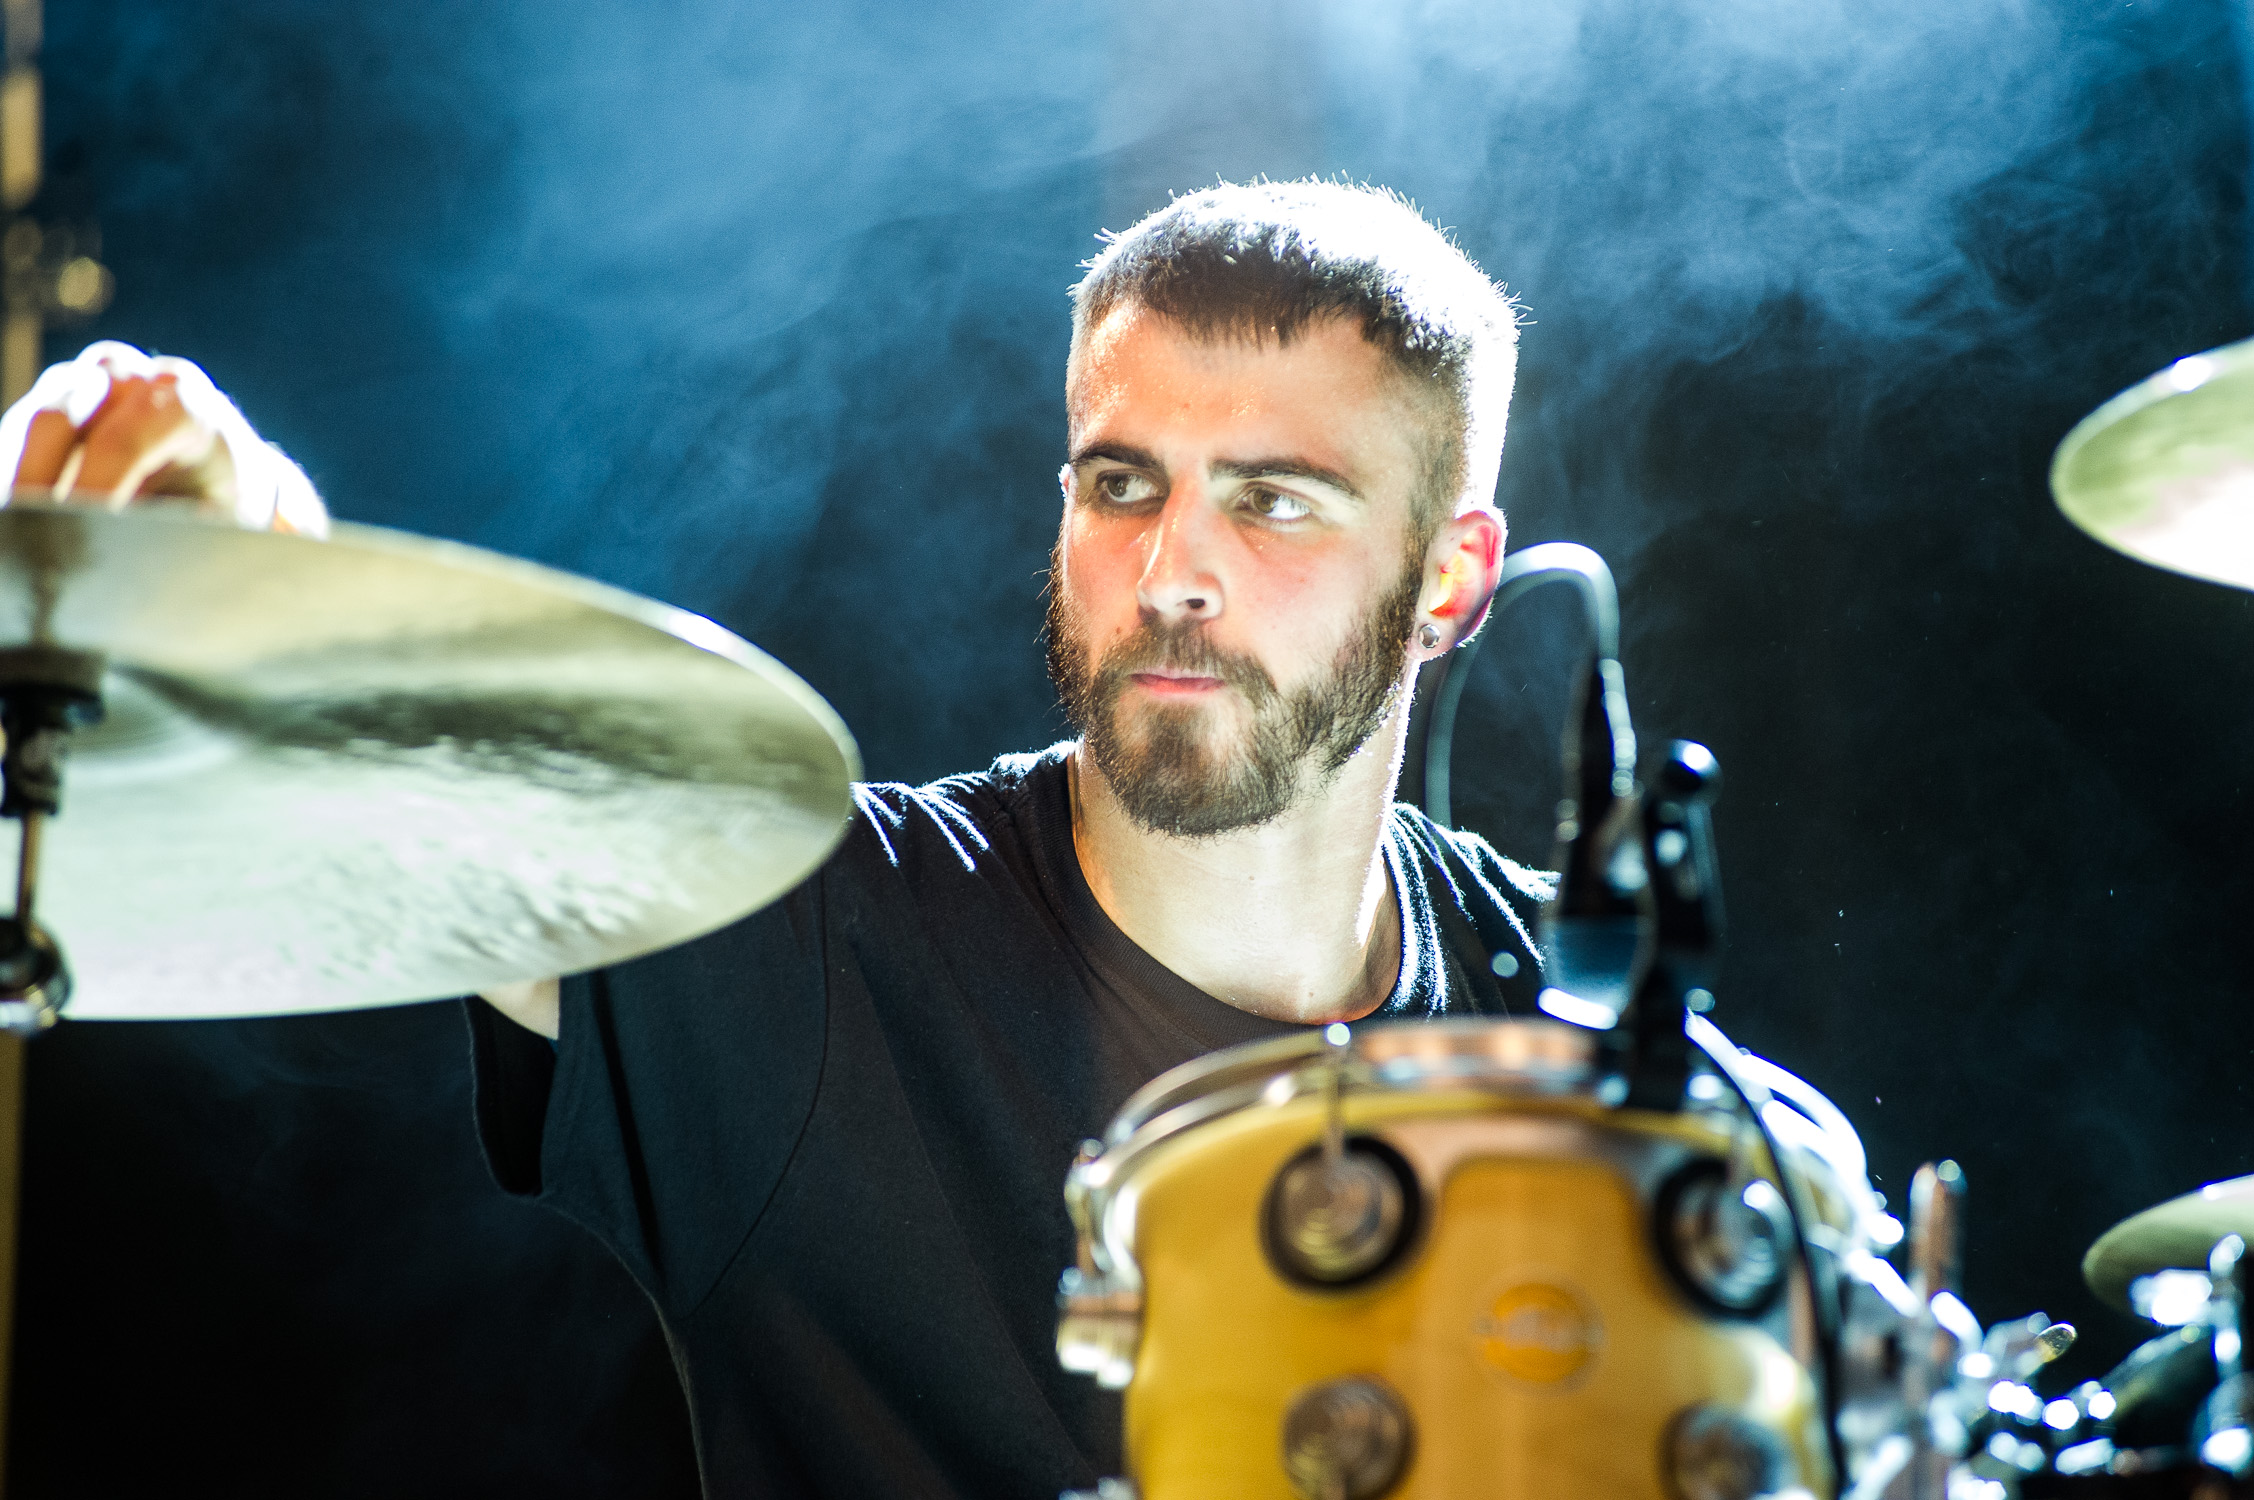 Jim Lockey & The Solemn Sun Derry 28.09.13-106.jpg